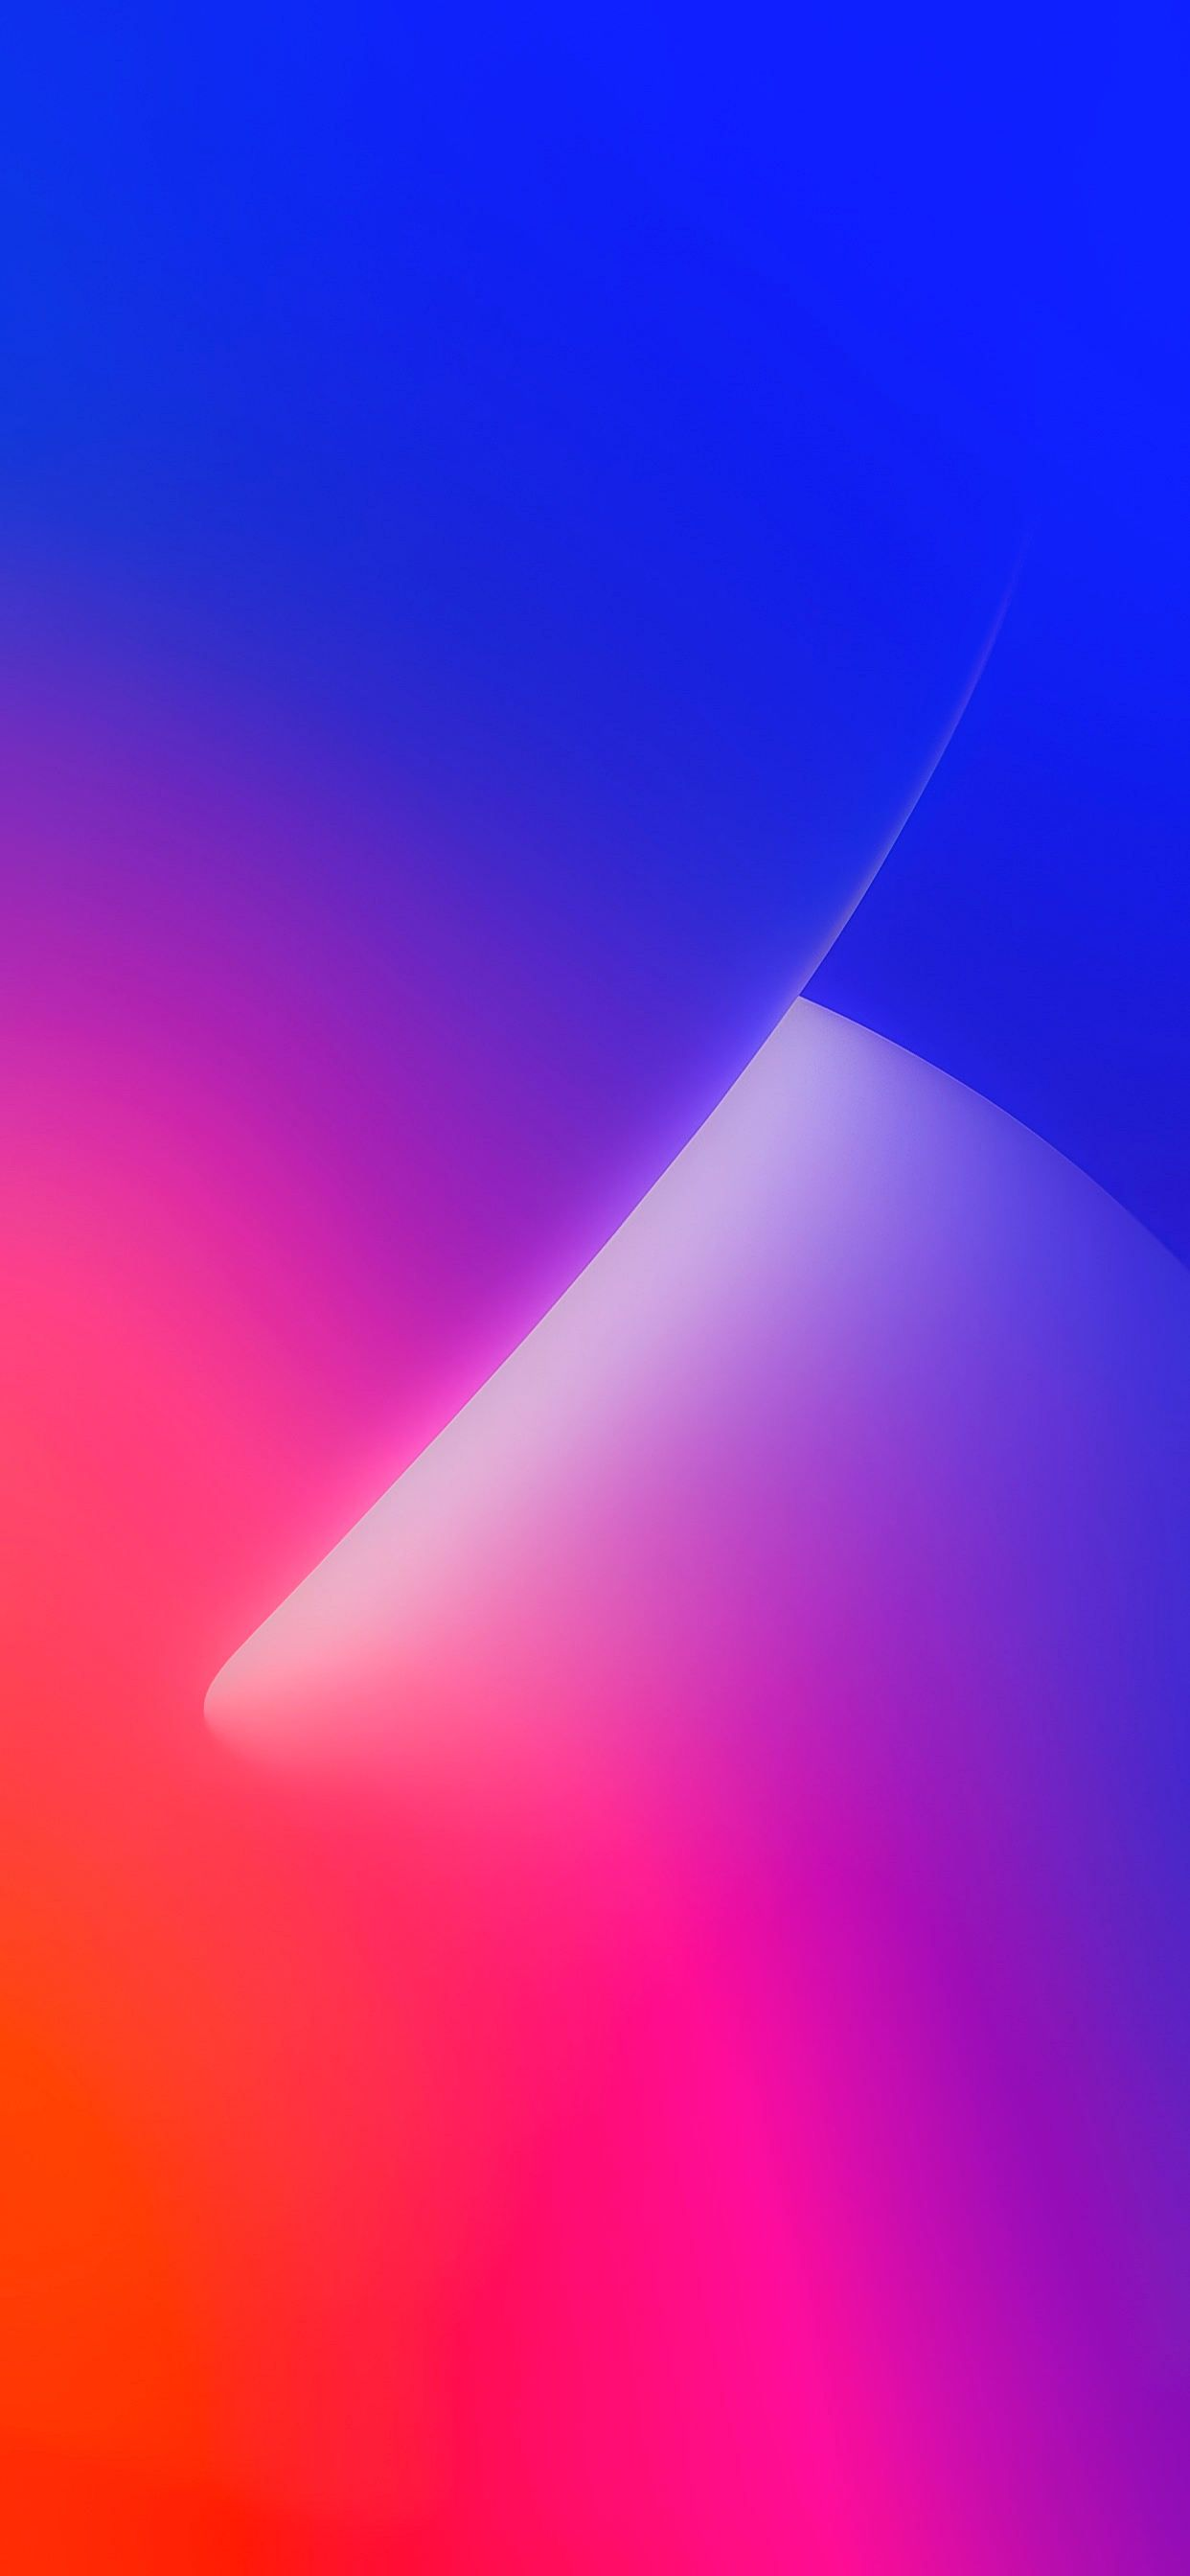 Oppo K3 Abstract Mobile Hd Wallpapers 1242x2688 Abstract Iphone Wallpaper Neon Wallpaper Iphone Homescreen Wallpaper K3 stock wallpapers wallpaper oppo k3